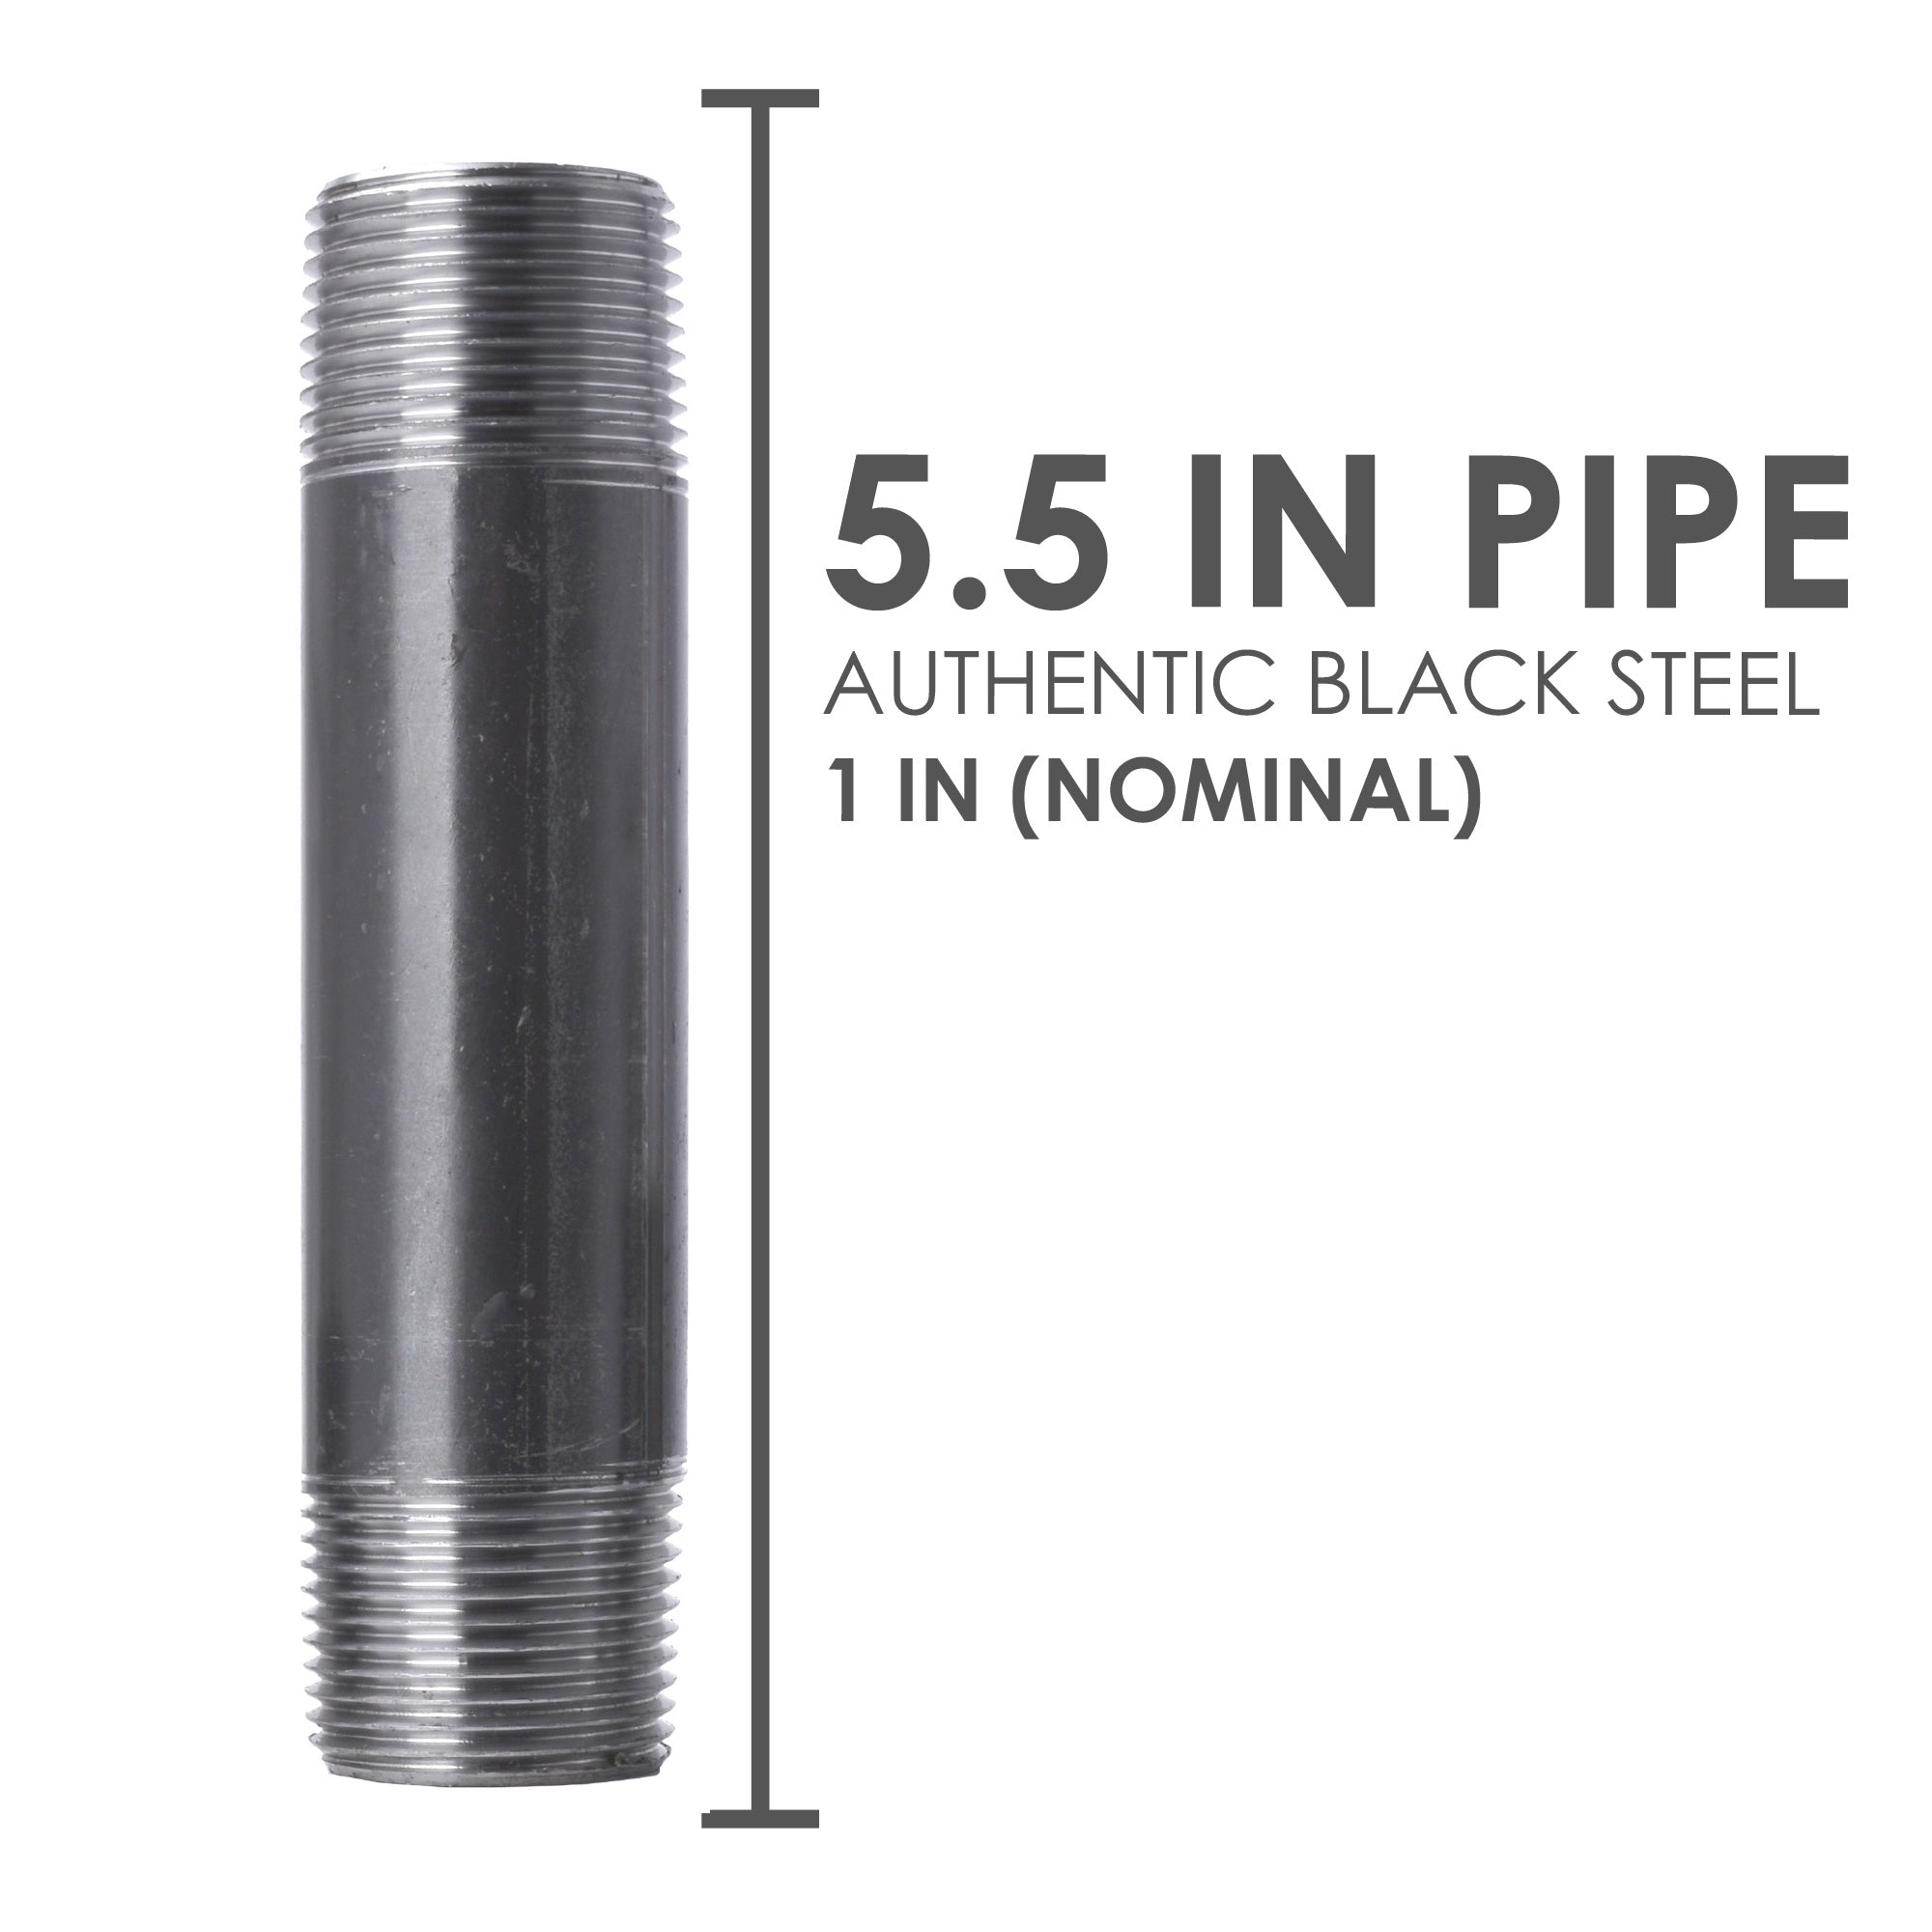 1 in. X 5 1/2 in. Black Pipe 6 Pack - Pipe Decor